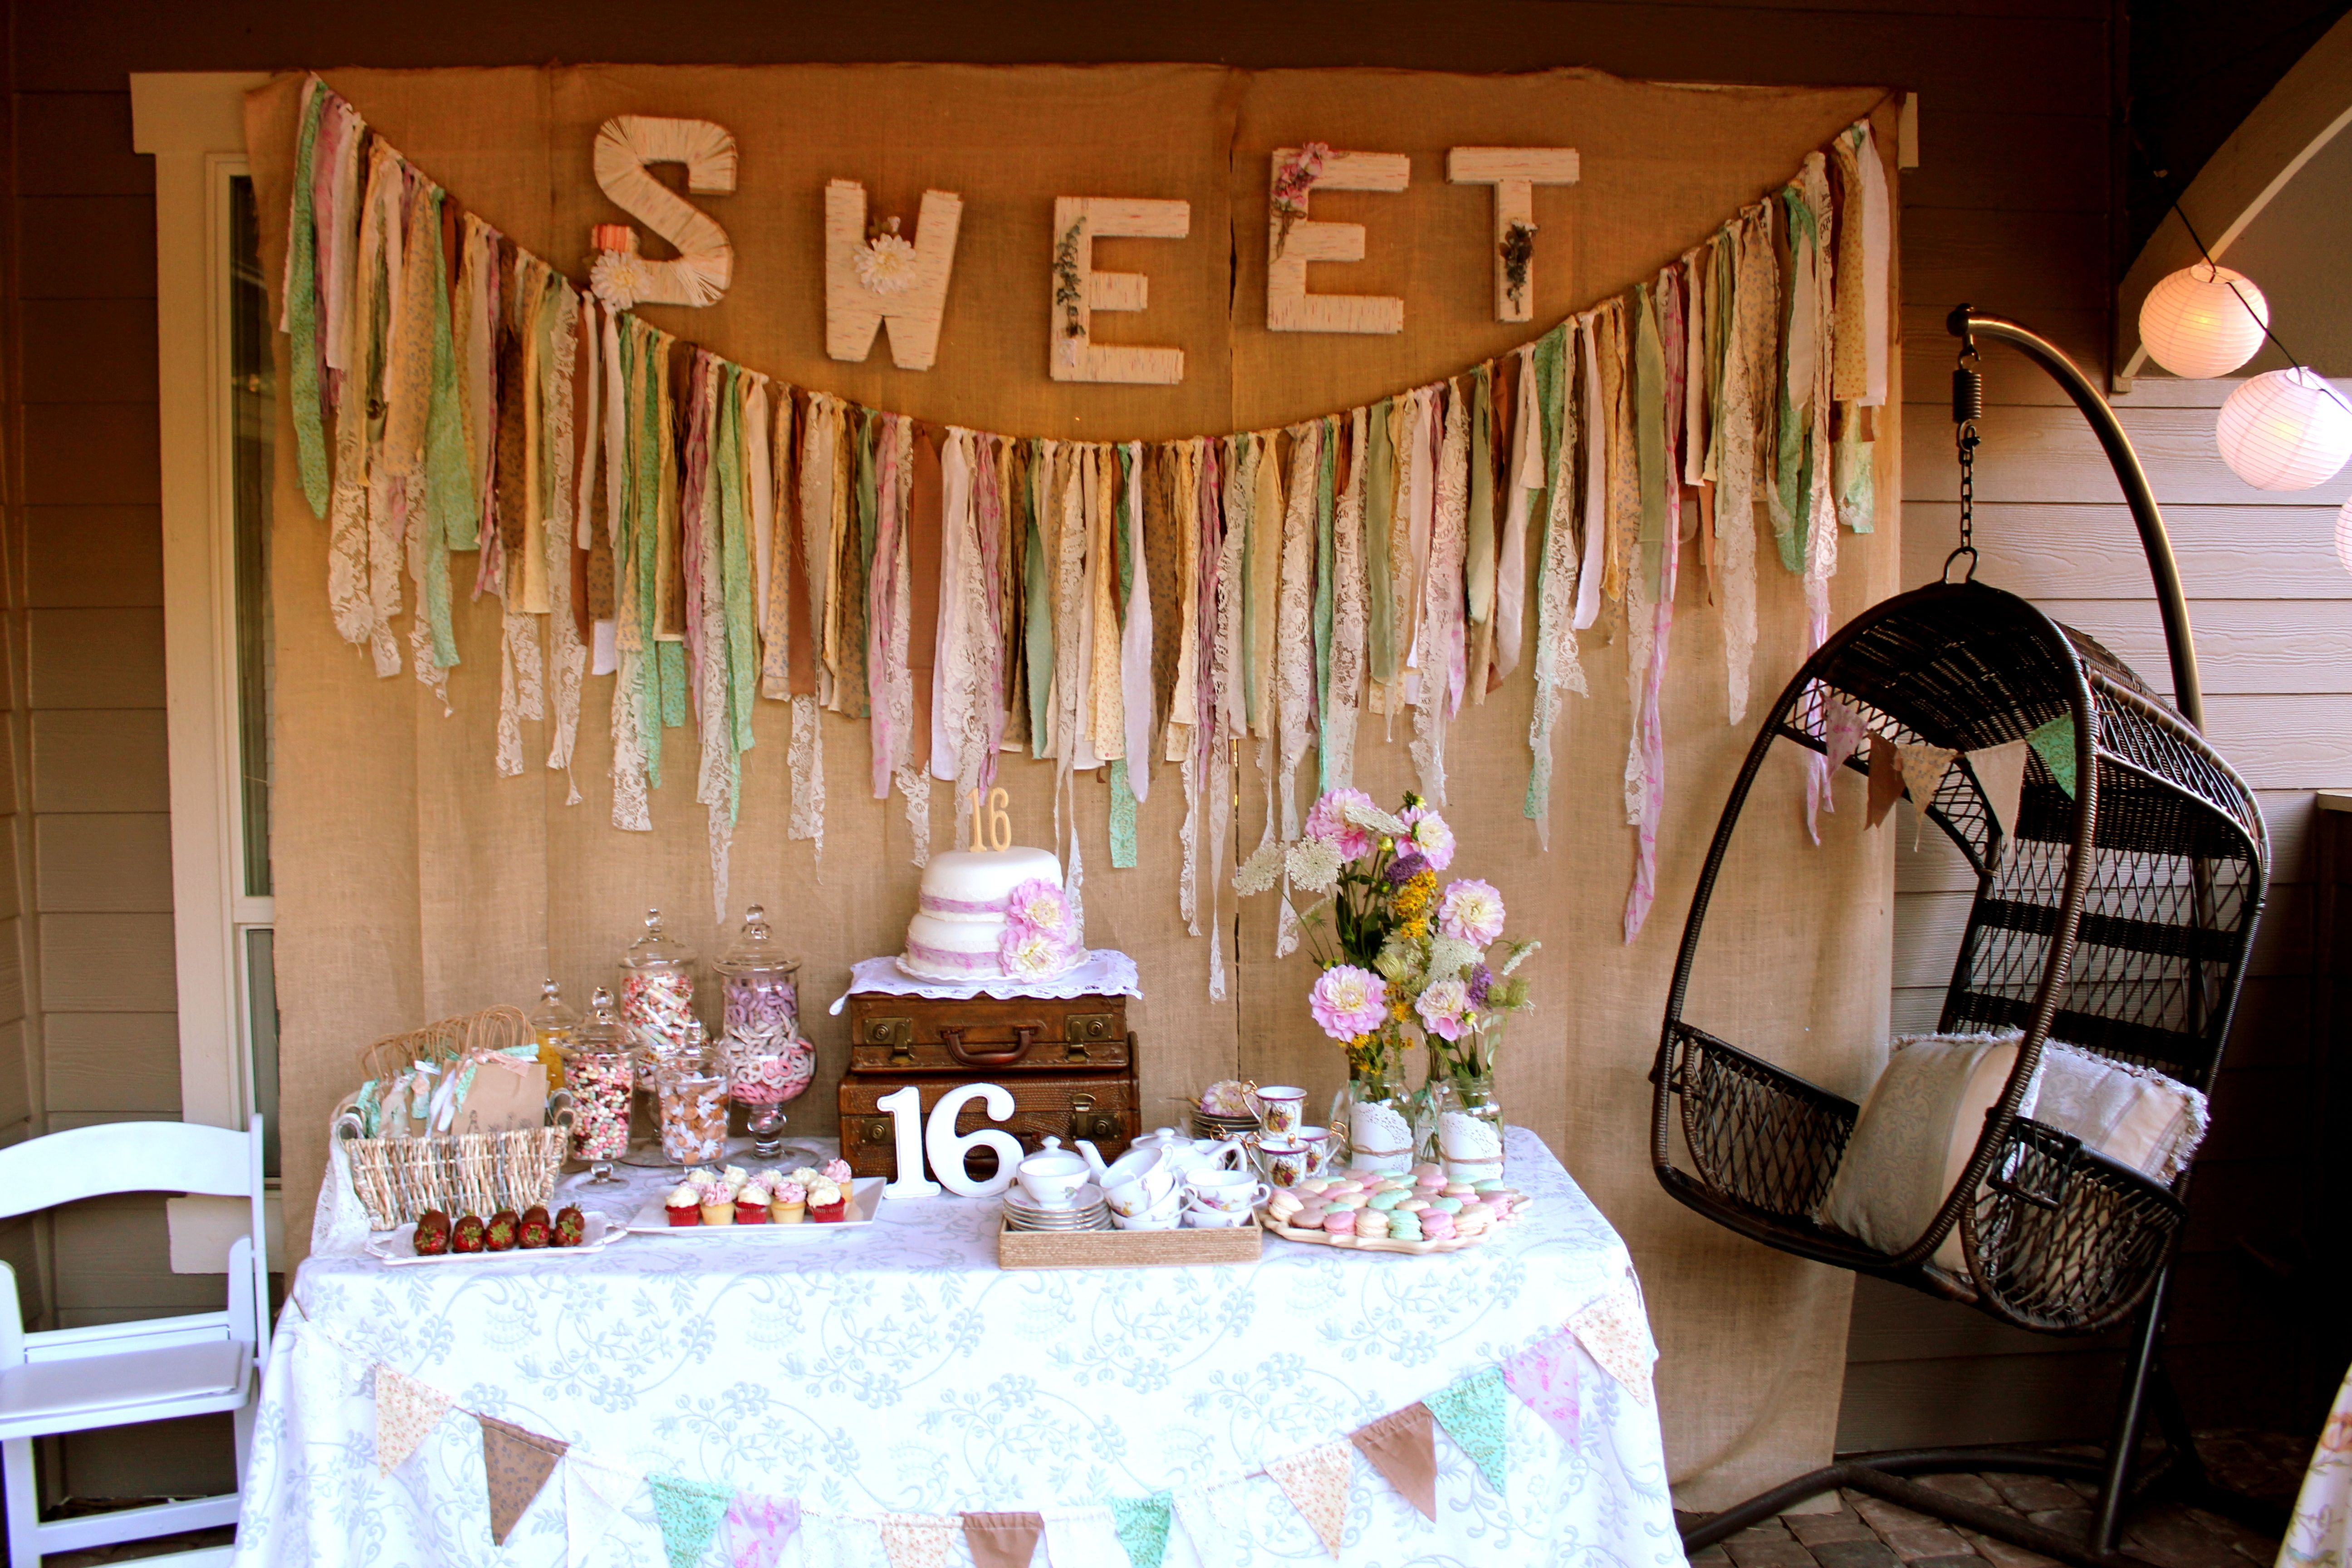 Sweet 16 Vintage Inspired Decorations | Sweet 16 ...